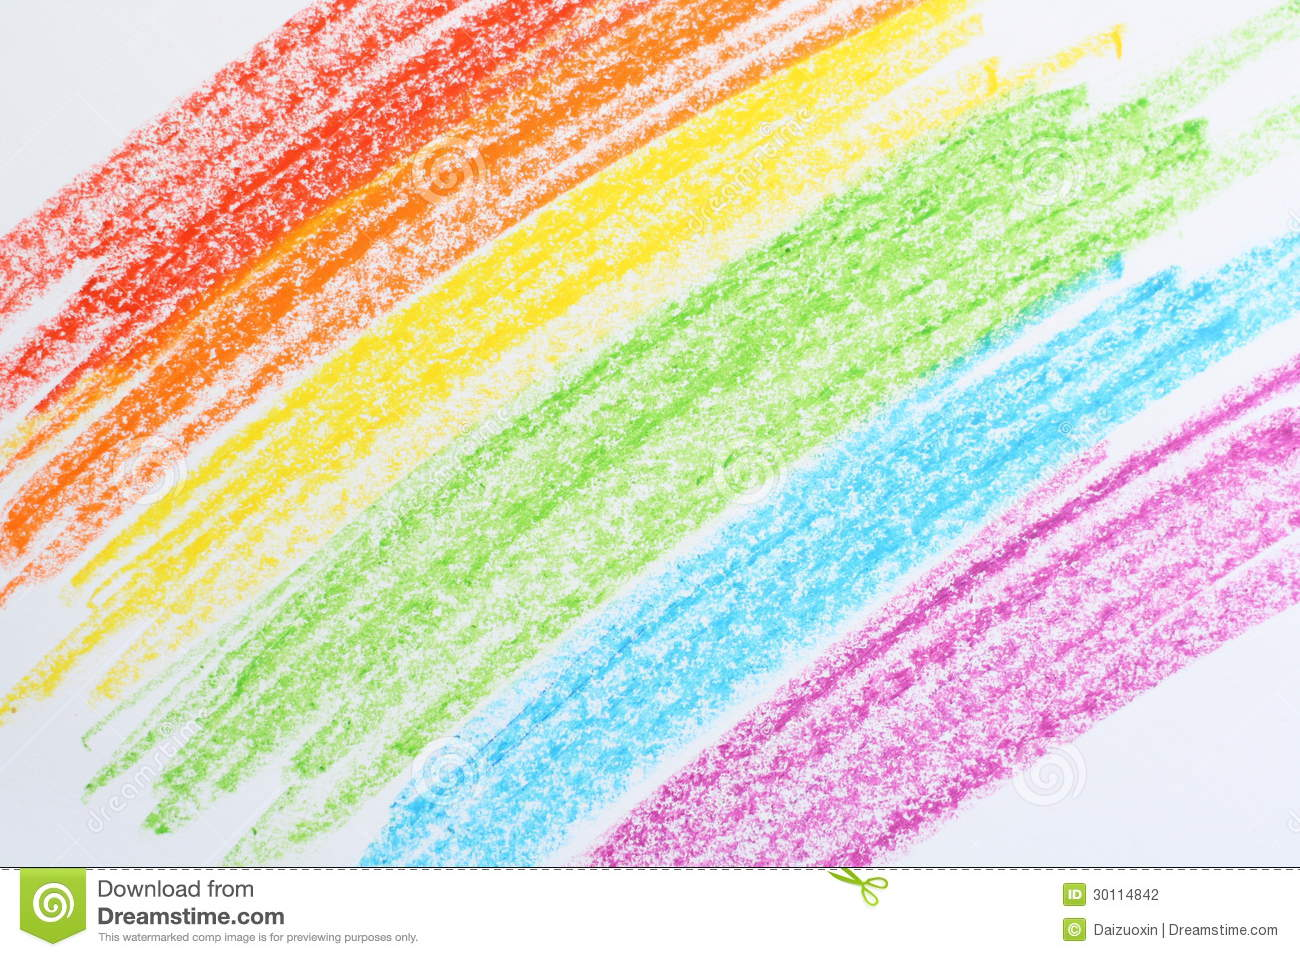 Crayon colors stock photo. Image of artwork, background - 30114842